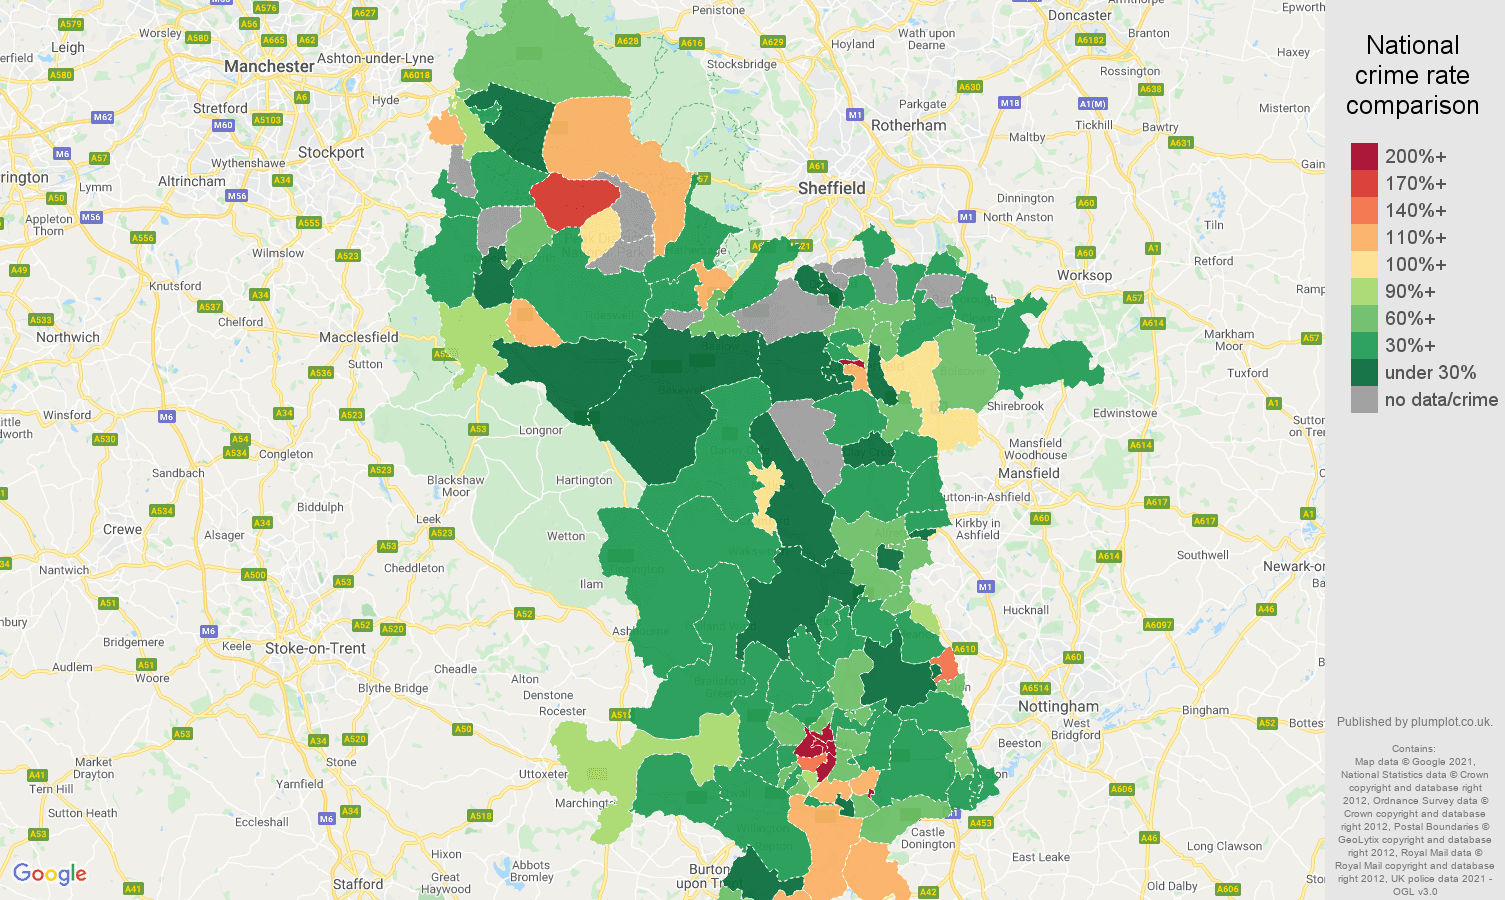 Derbyshire drugs crime rate comparison map